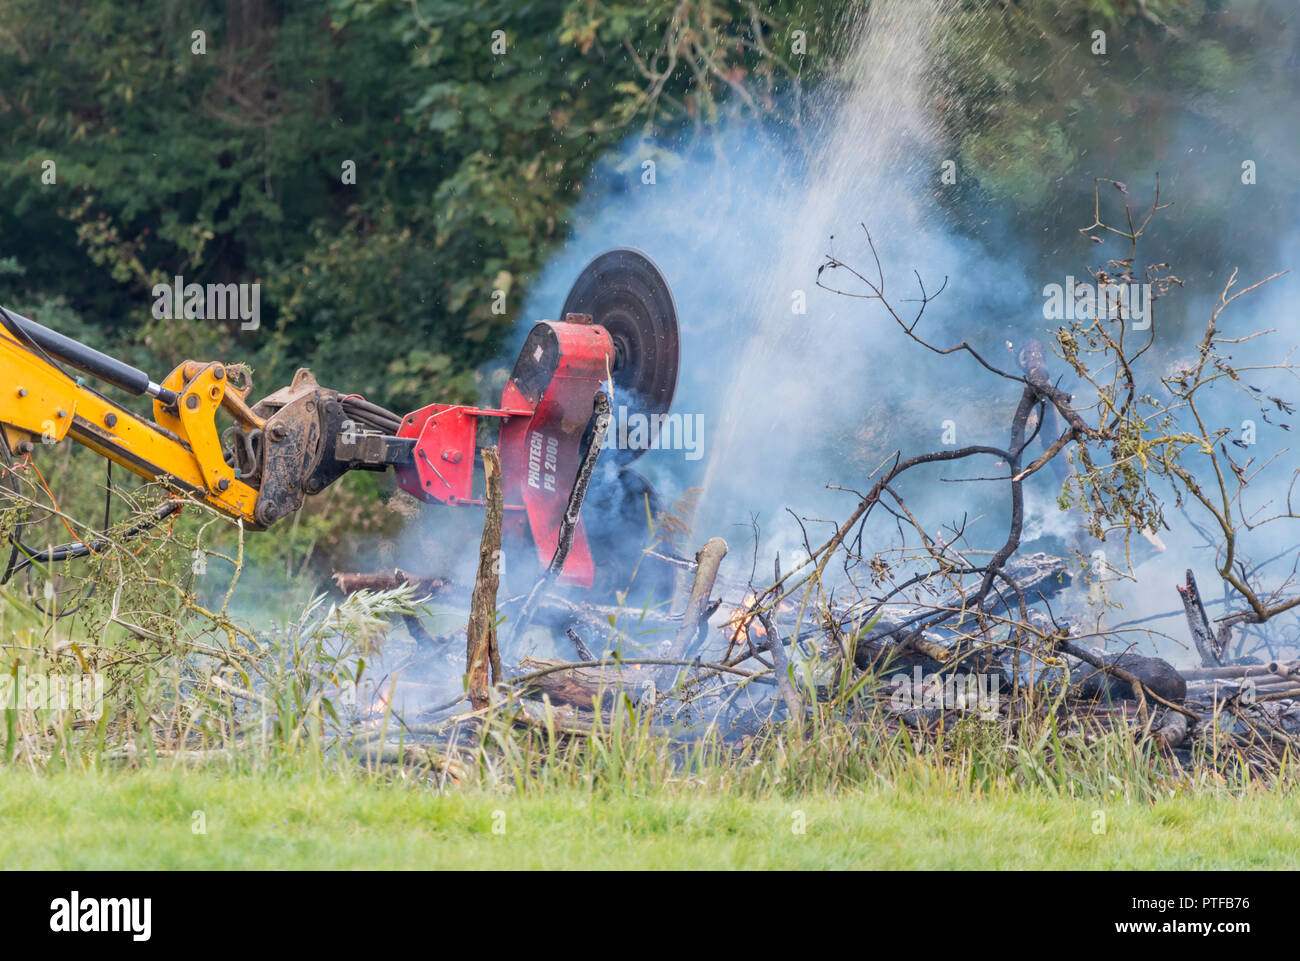 Protech PB2000 (Powerblade 2000) double rotating saw fitted to a tractor, cutting firewood in a bonfire in the countryside, UK. - Stock Image